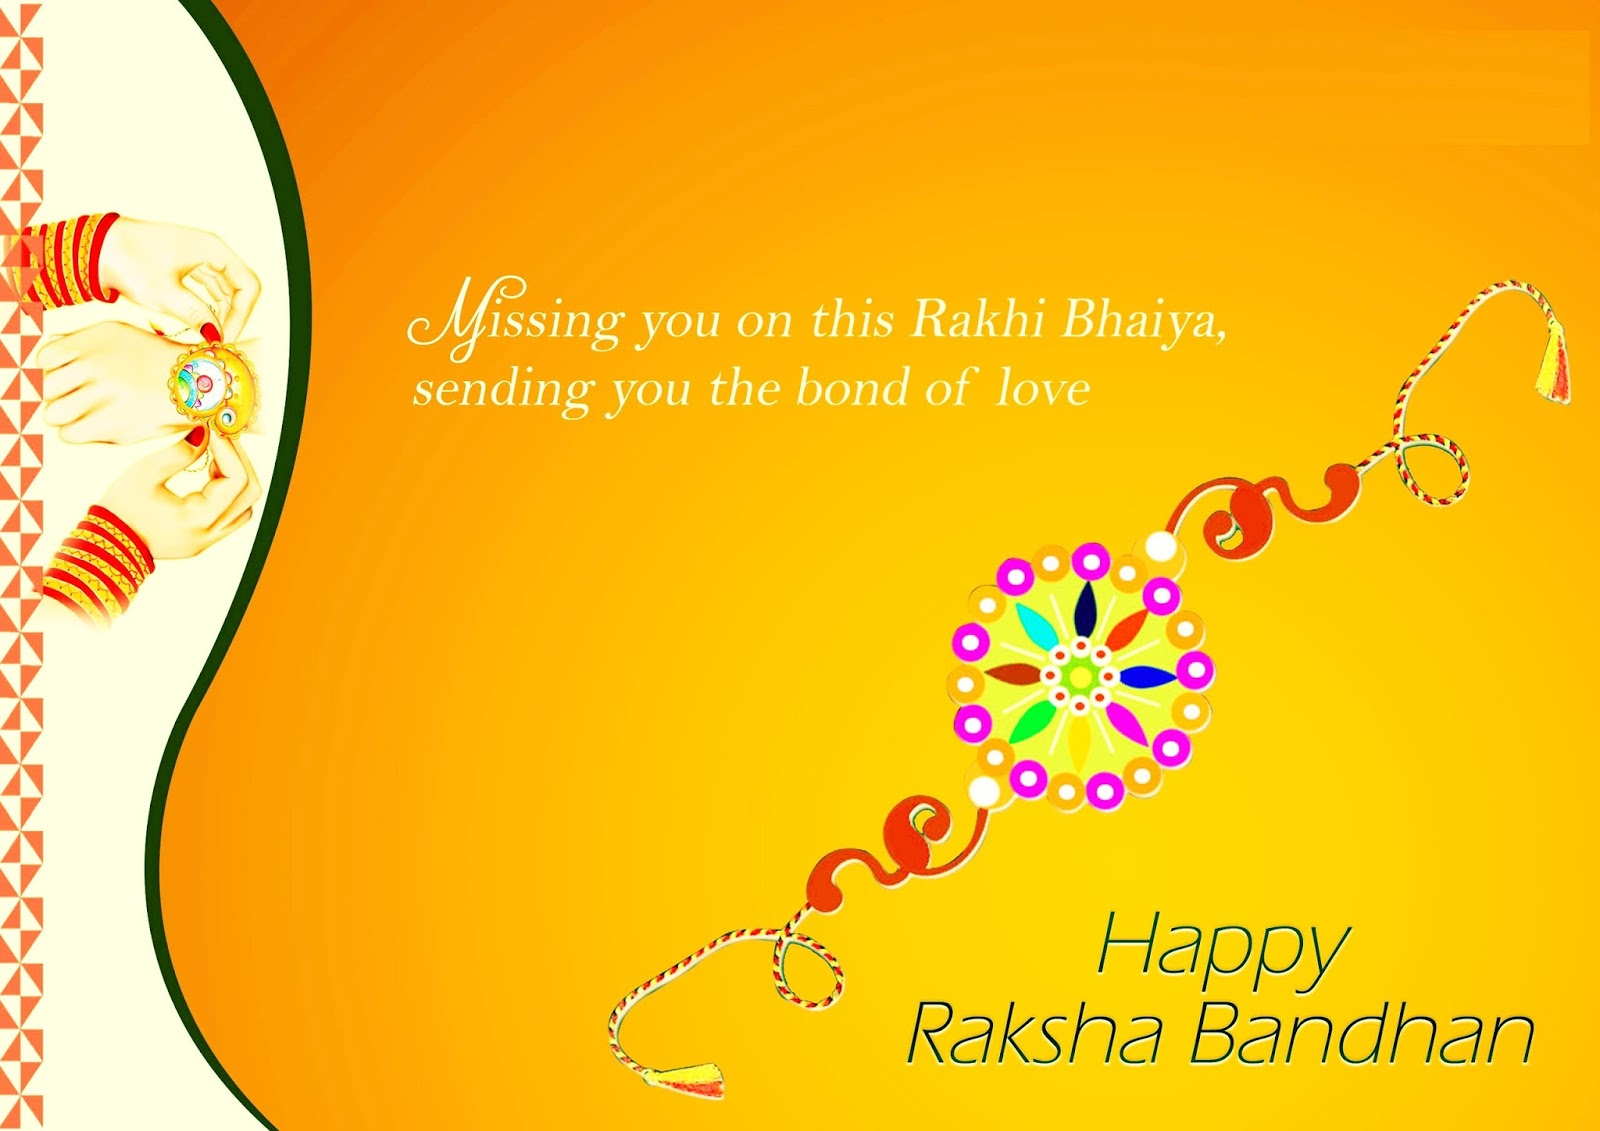 happy raksha bandhan raksha bandhan images raksha bandhan happy raksha bandhan sms in english